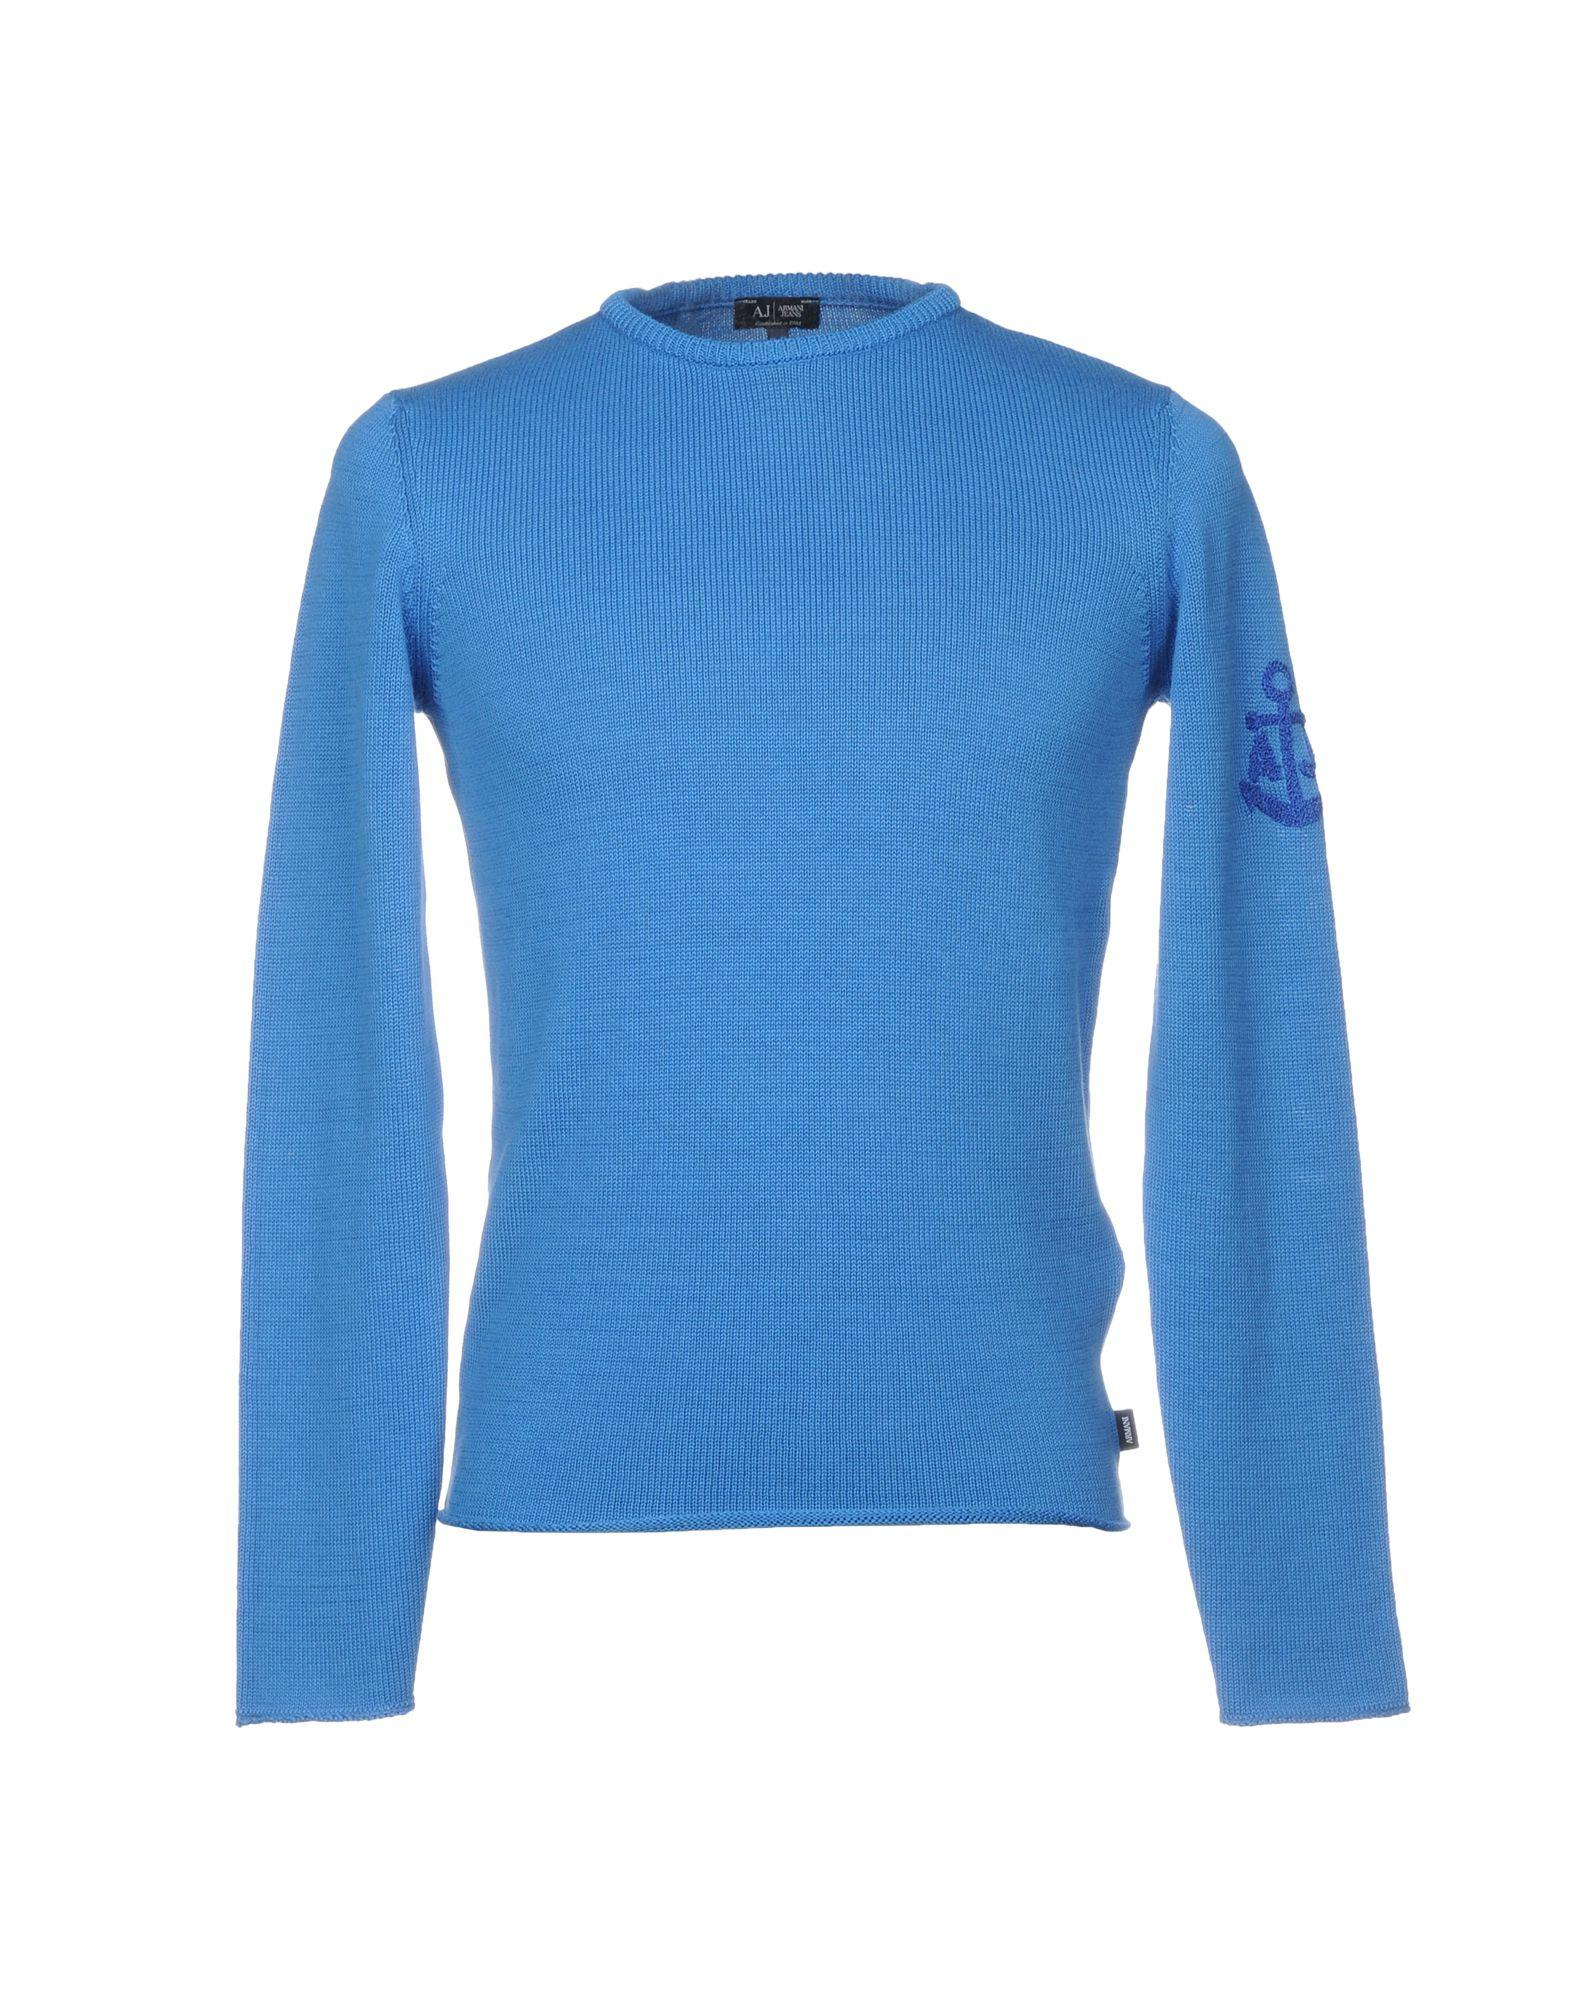 Armani Jeans Sweater In Bright Blue